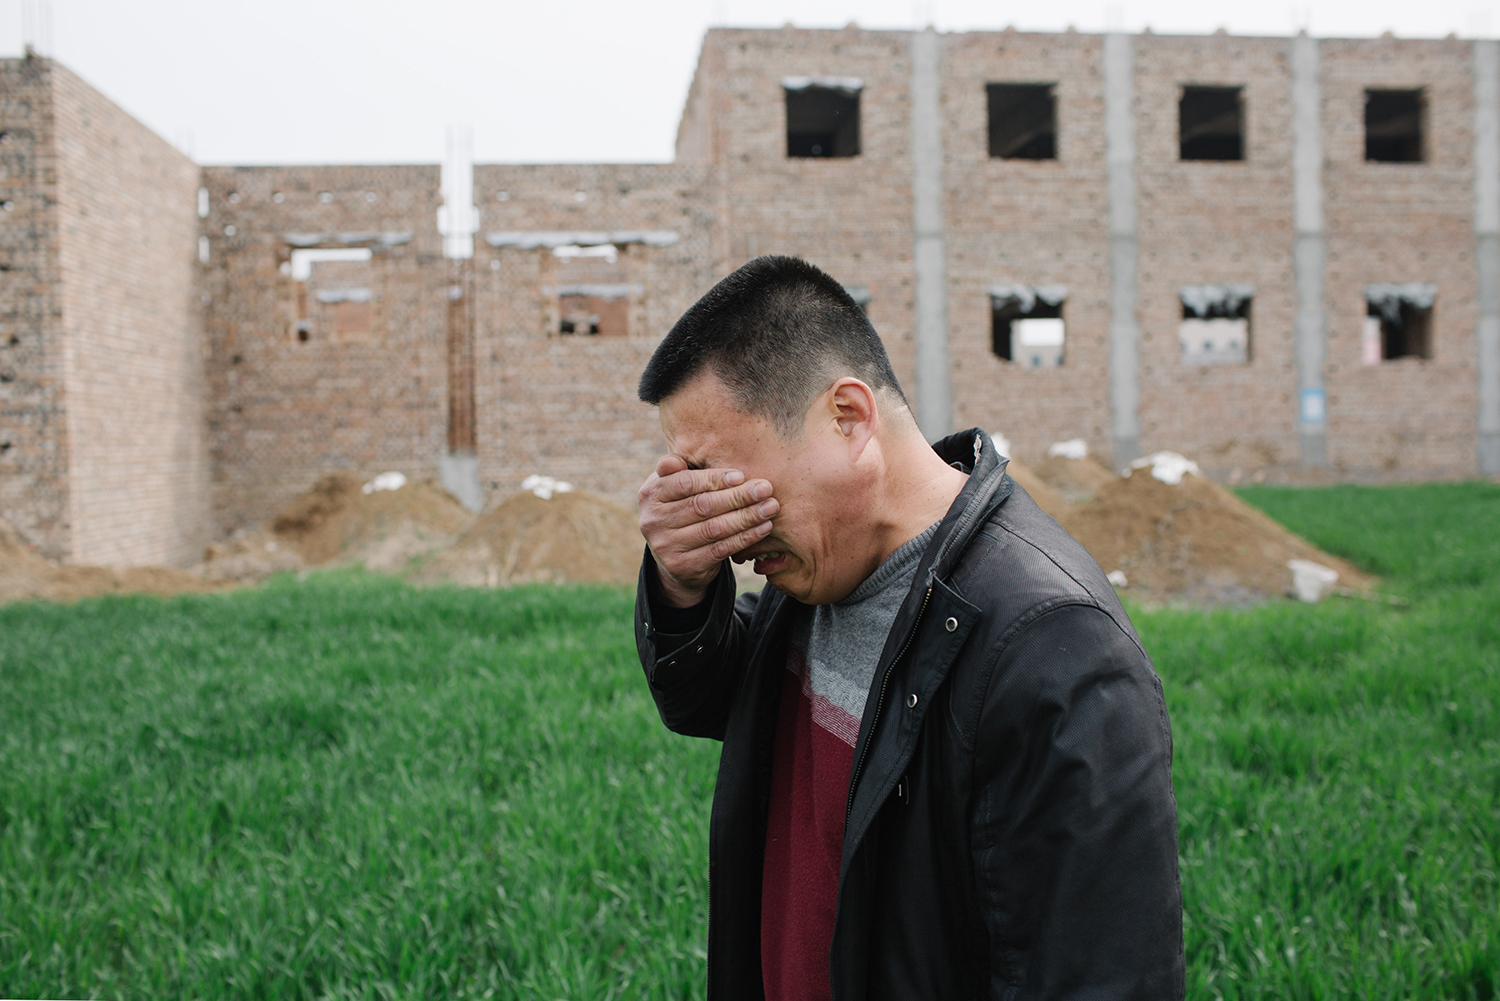 April 10, 50-year-old Zhao, owner of a shoe factory, covers his face to hide tears while discussing his worries about the future, in Anxin county, Hebei province. The Chinese central government announced the establishment of the Xiong'an New District on April 1. The district, designed to become a hub of economic development, encompasses the counties of Xiongxian, Anxin, and Rongcheng in Hebei. Many locals have feared their small businesses will be displaced by newcomers. (Wu Huiyuan/Sixth Tone)